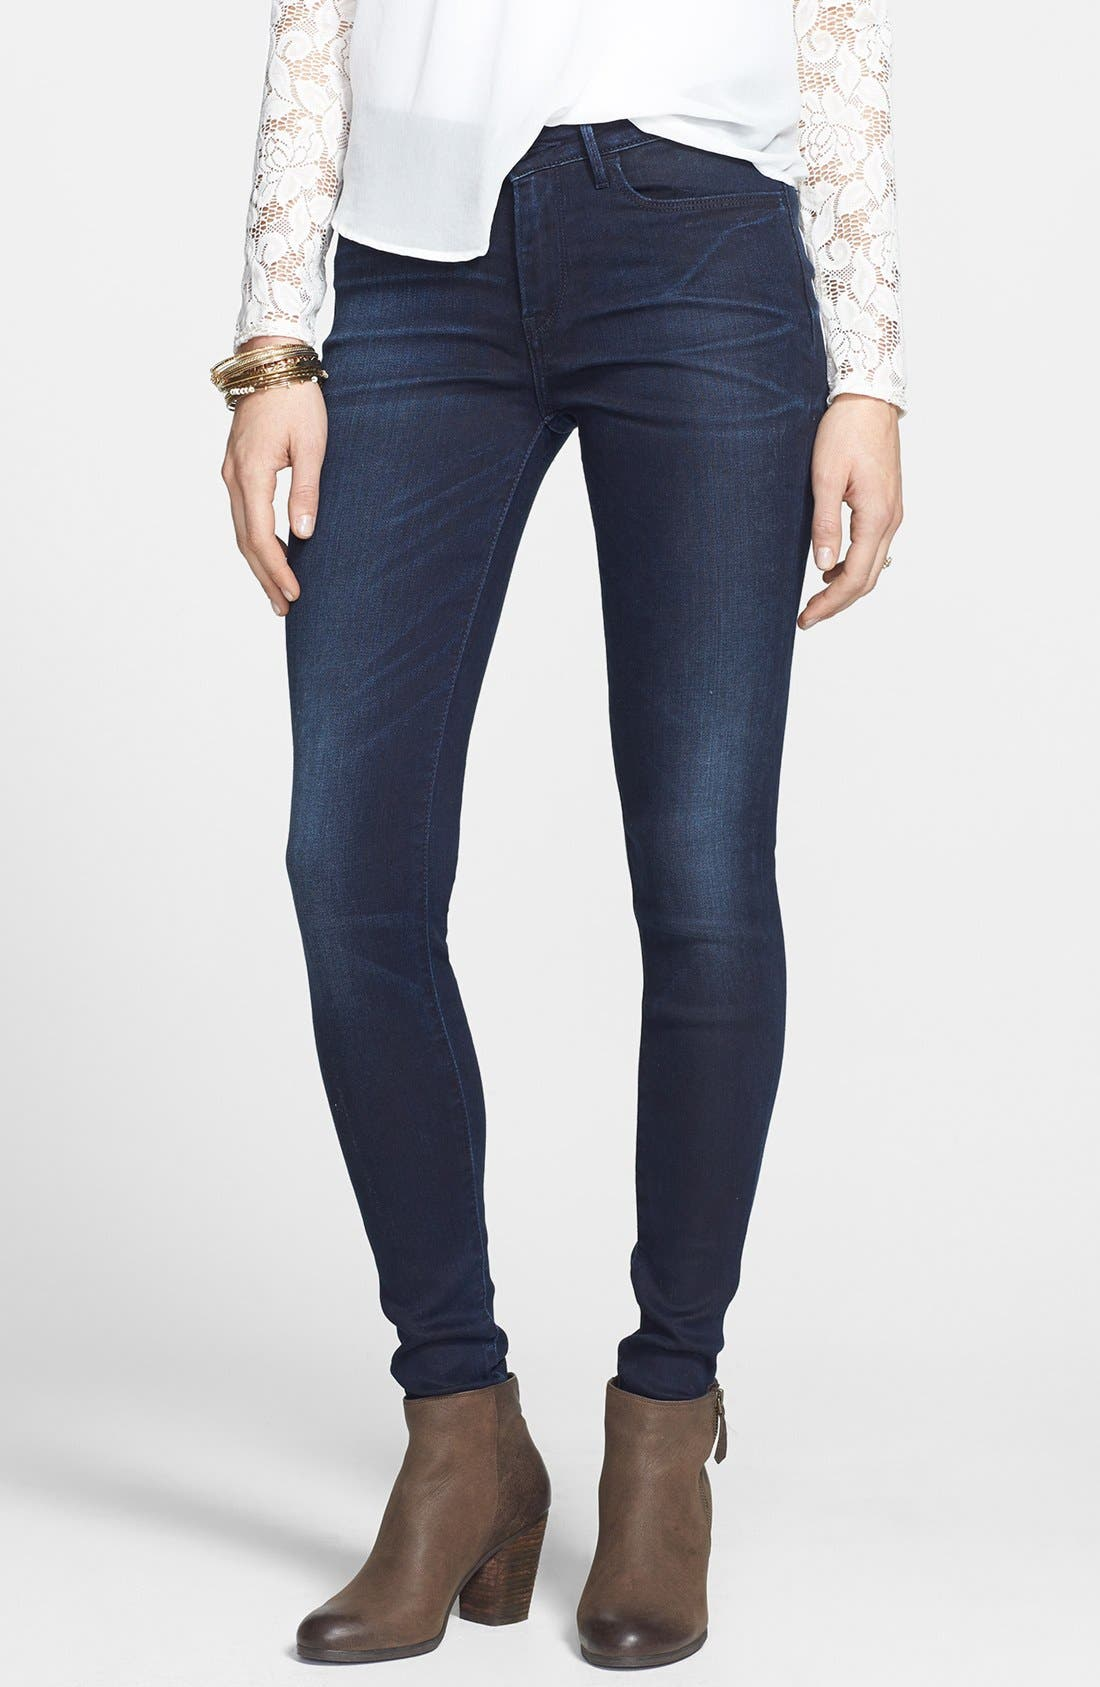 Alternate Image 1 Selected - Levi's® 'Core Better Legging' Skinny Jeans (Dark)